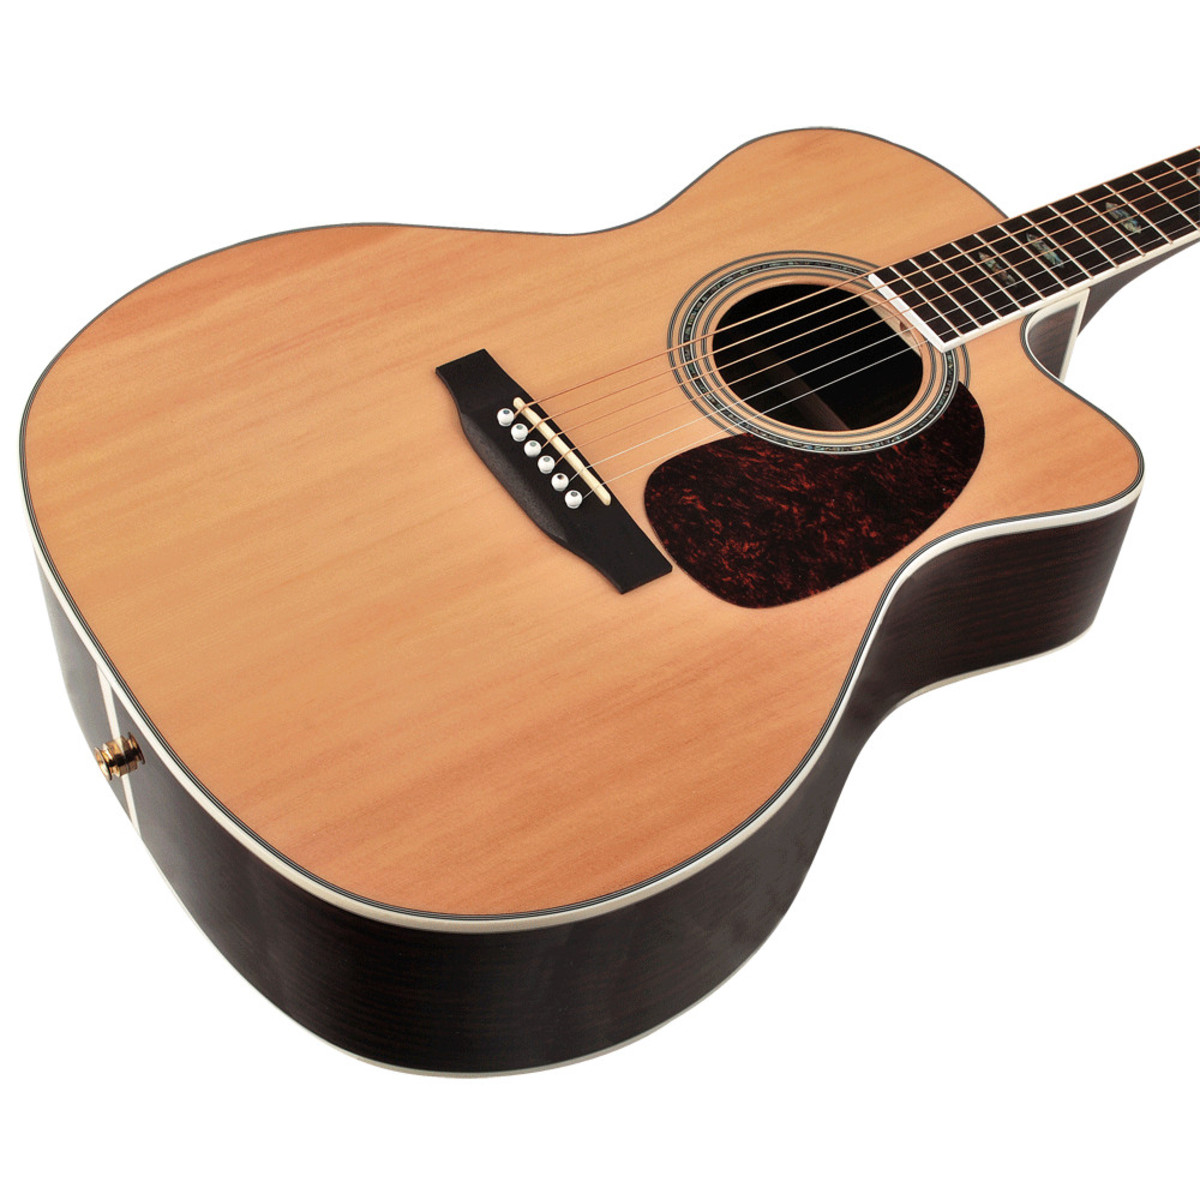 Sigma JRC-40E Electro-Acoustic Guitar, Natural at Gear4music com